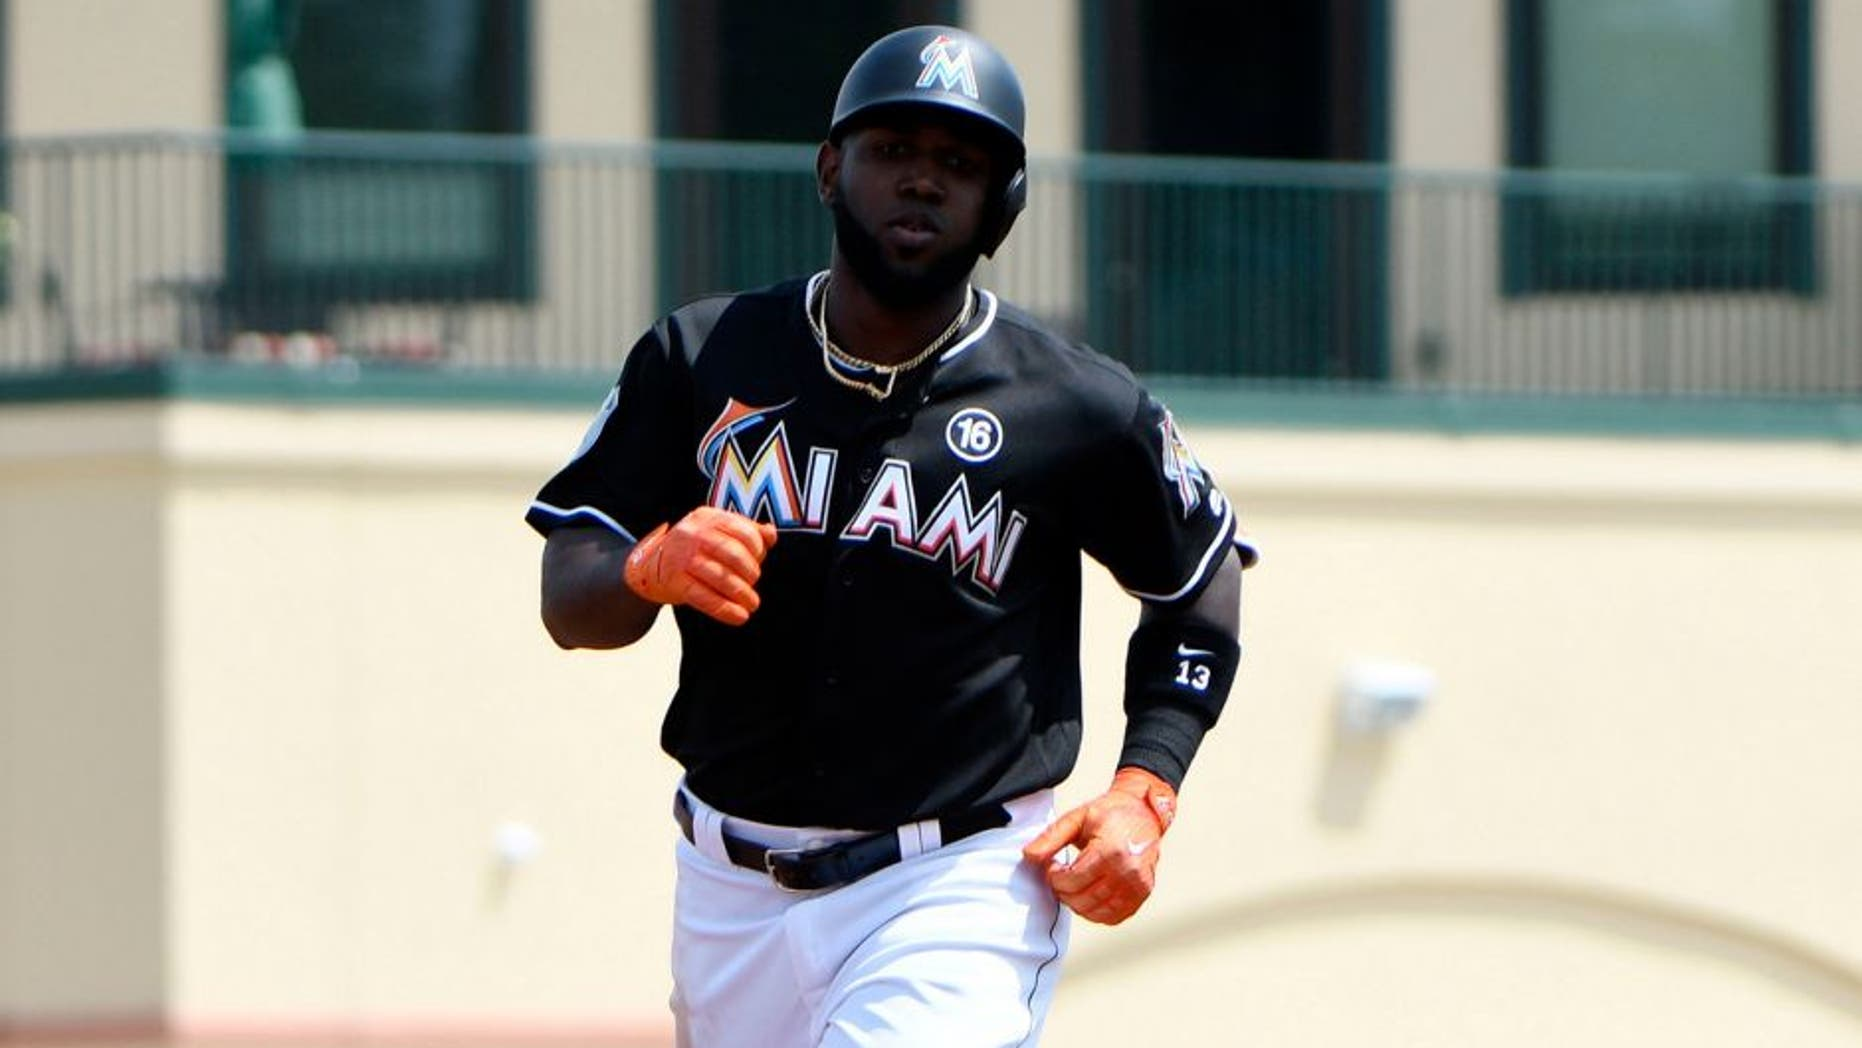 Mar 17, 2017; Jupiter, FL, USA; Miami Marlins center fielder Marcell Ozuna (13) rounds the bases after hitting a three run homer during a spring training game against the Washington Nationals at Roger Dean Stadium. Mandatory Credit: Steve Mitchell-USA TODAY Sports